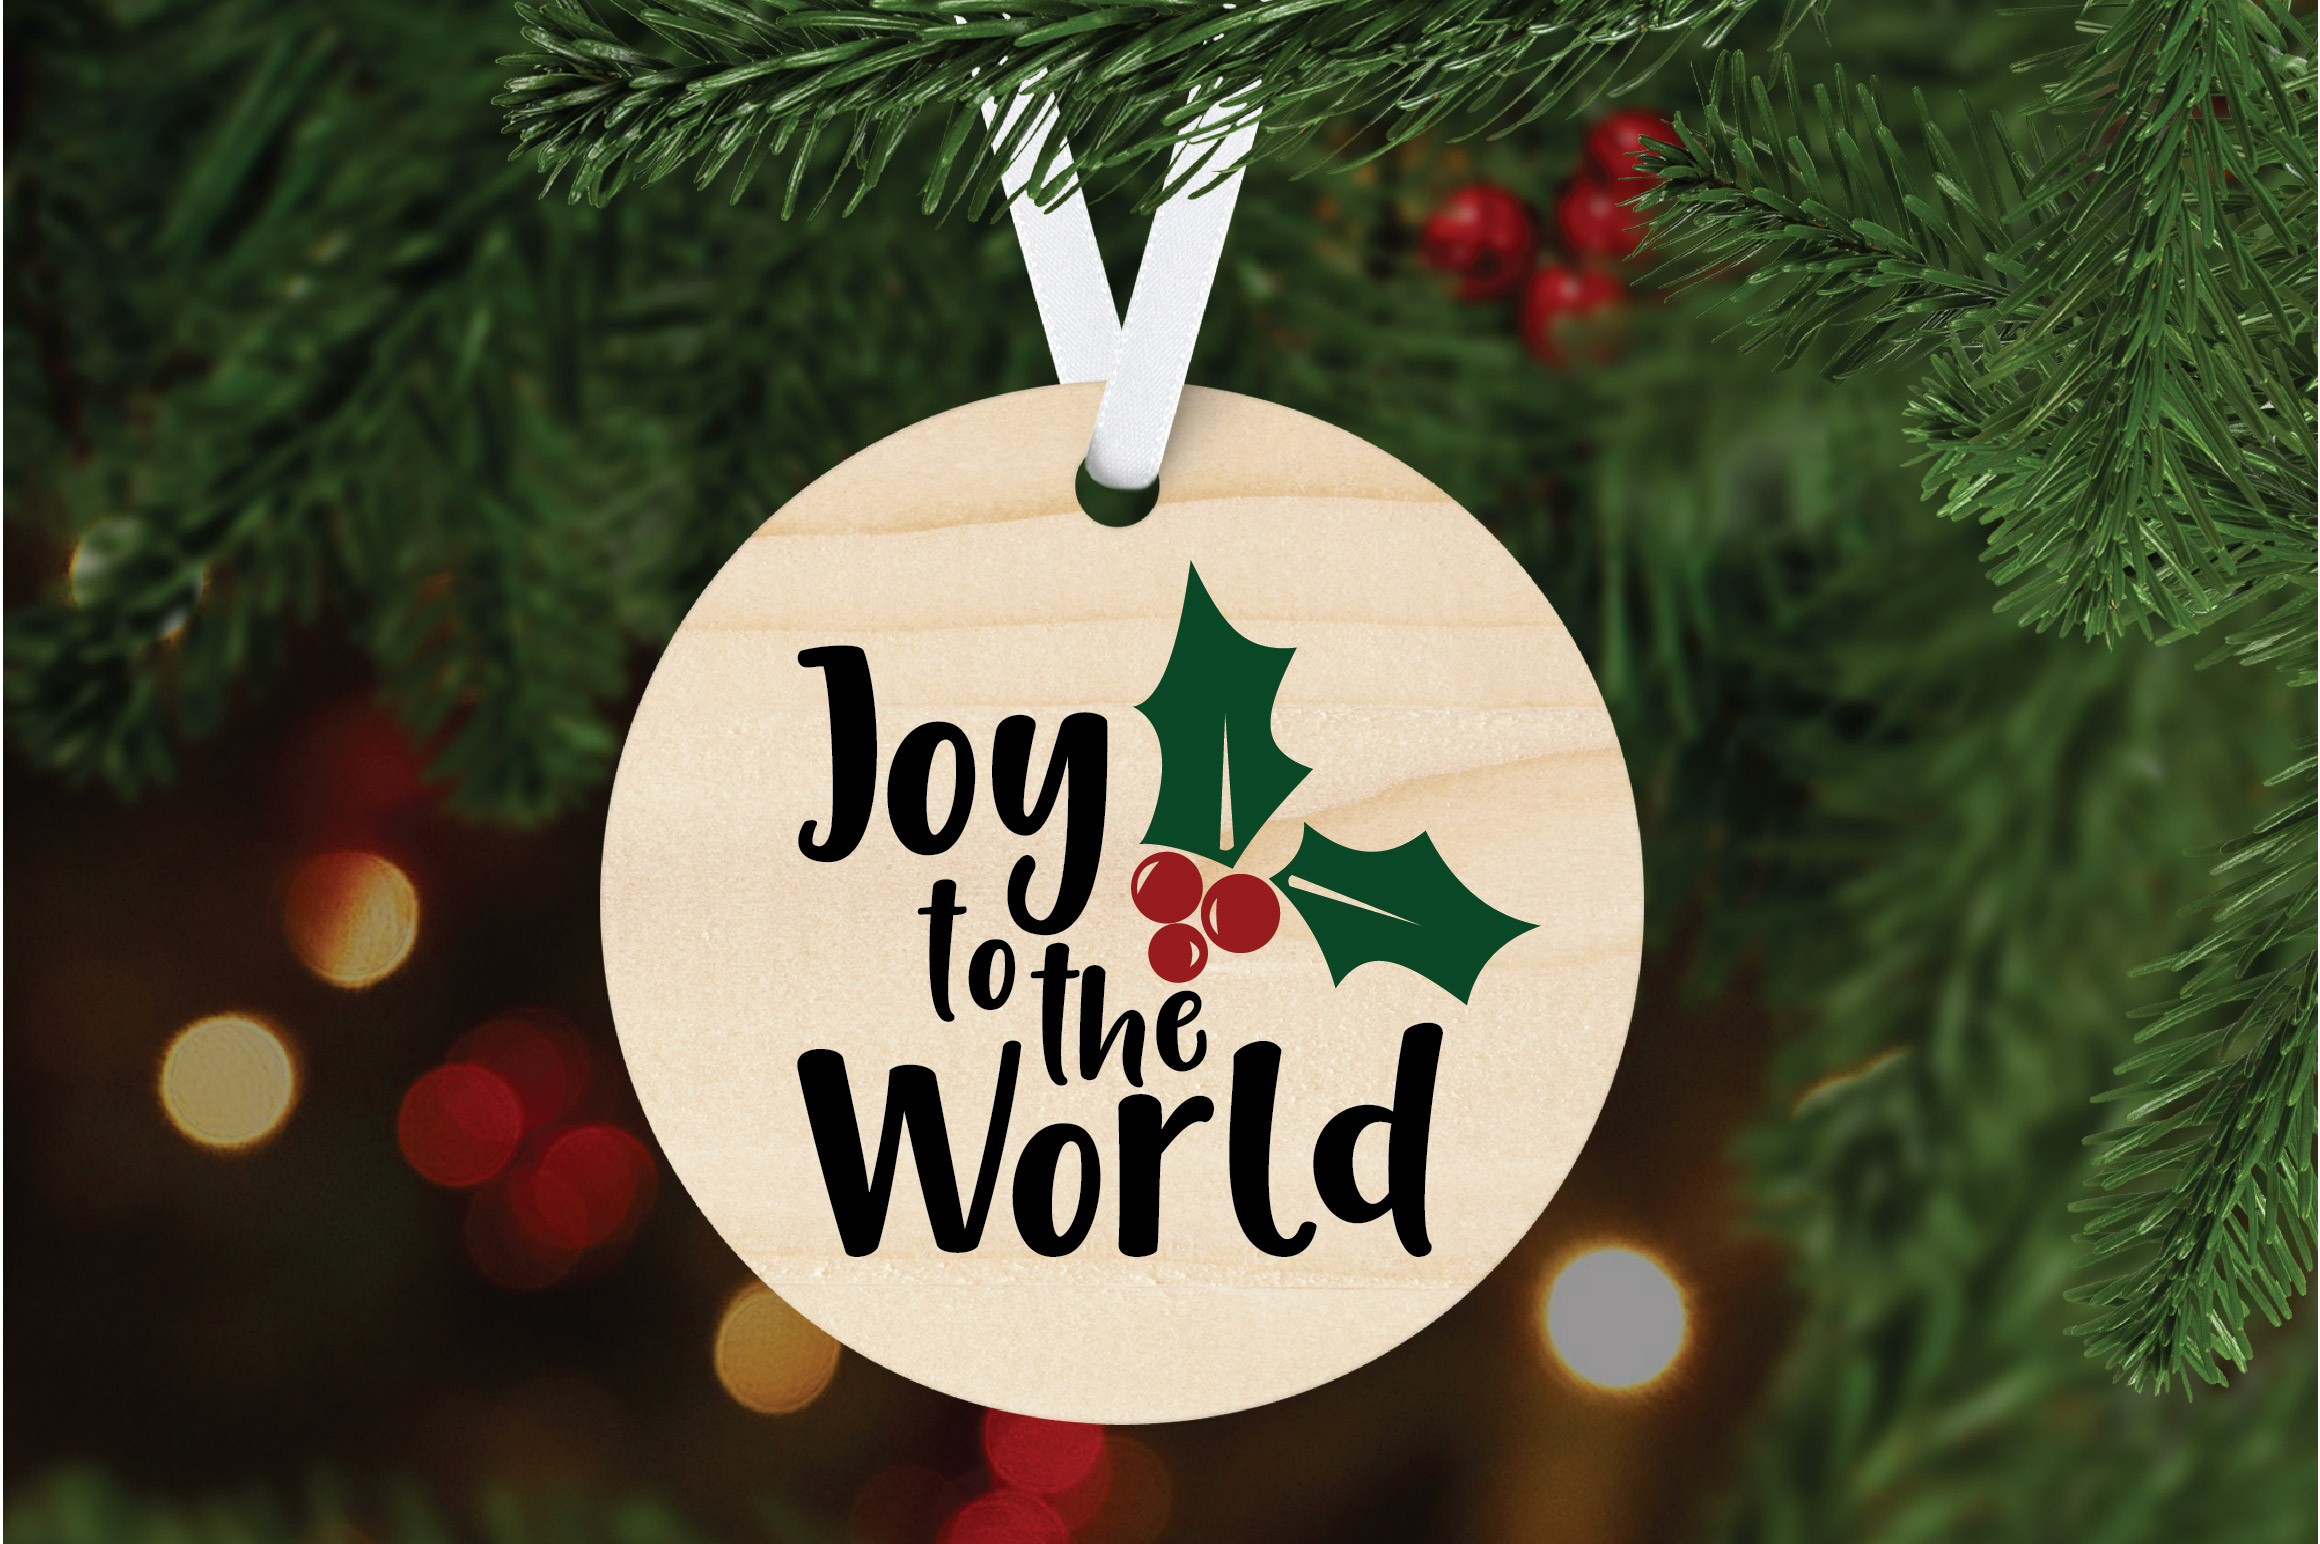 Joy to the World SVG Cut File - Christmas SVG example image 5